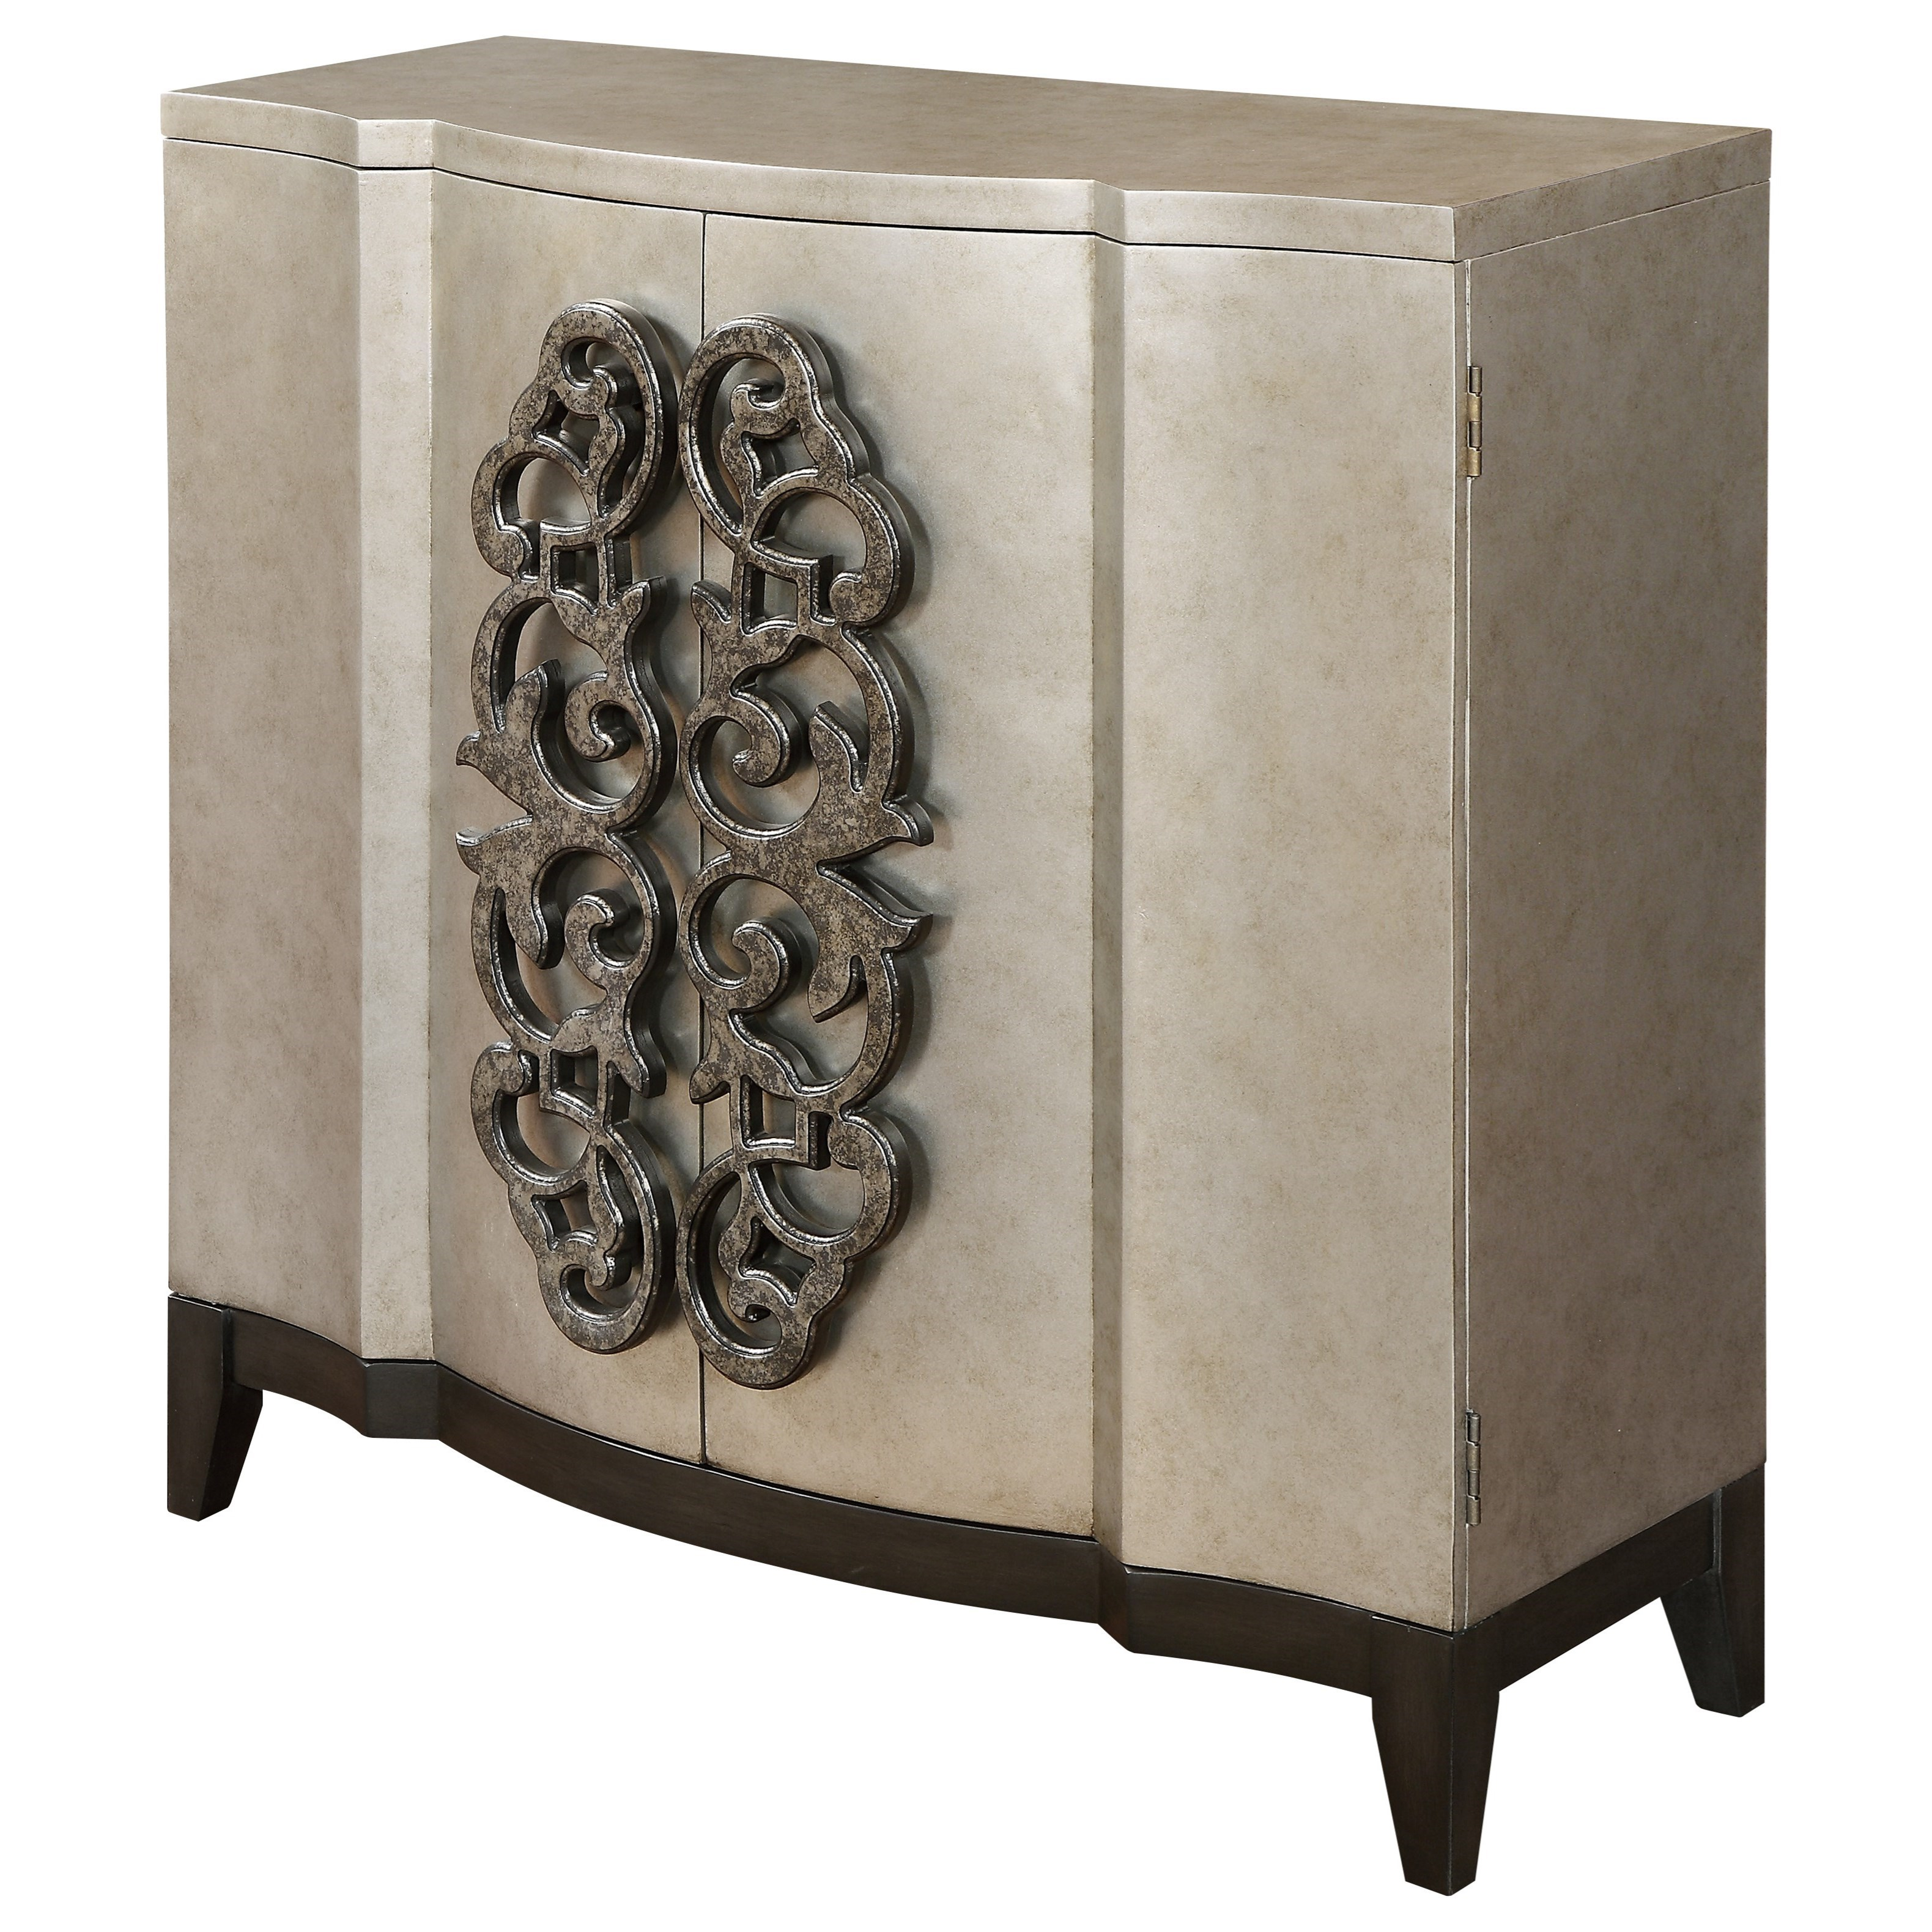 C2C Accents Two Door Cabinet by C2C at Walker's Furniture